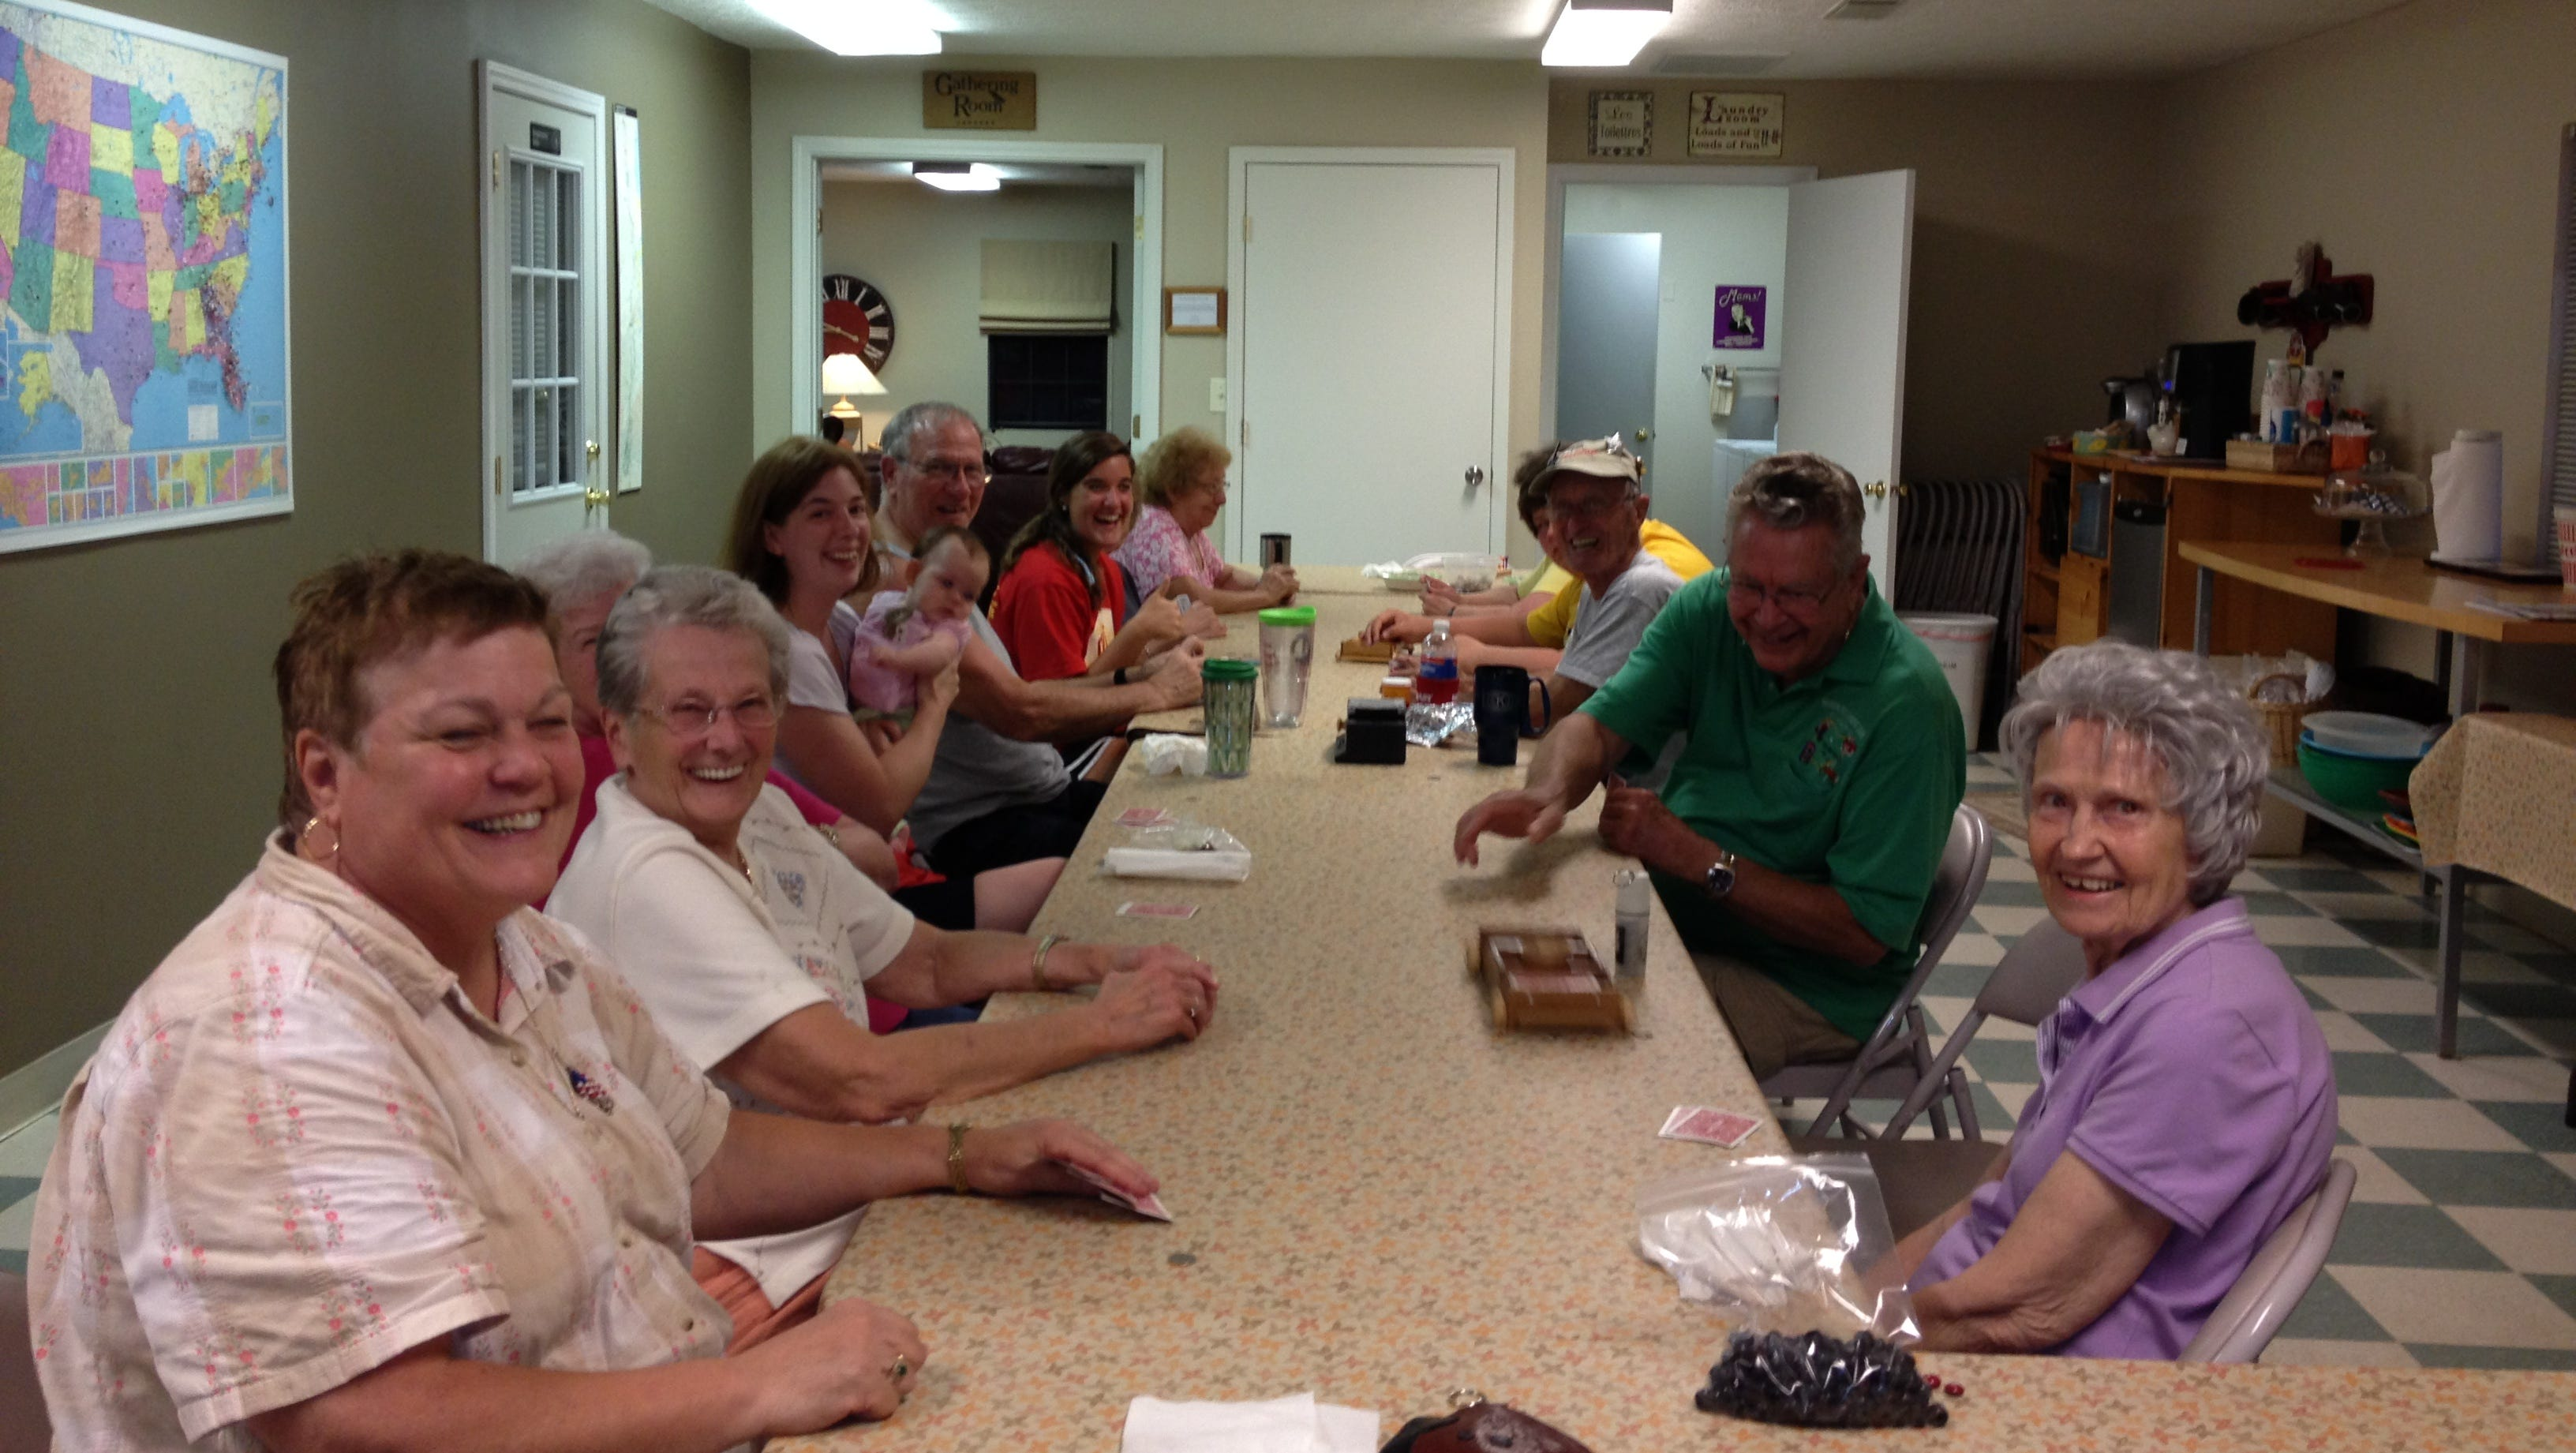 Guests congregate for one of the regular card games in the community building.